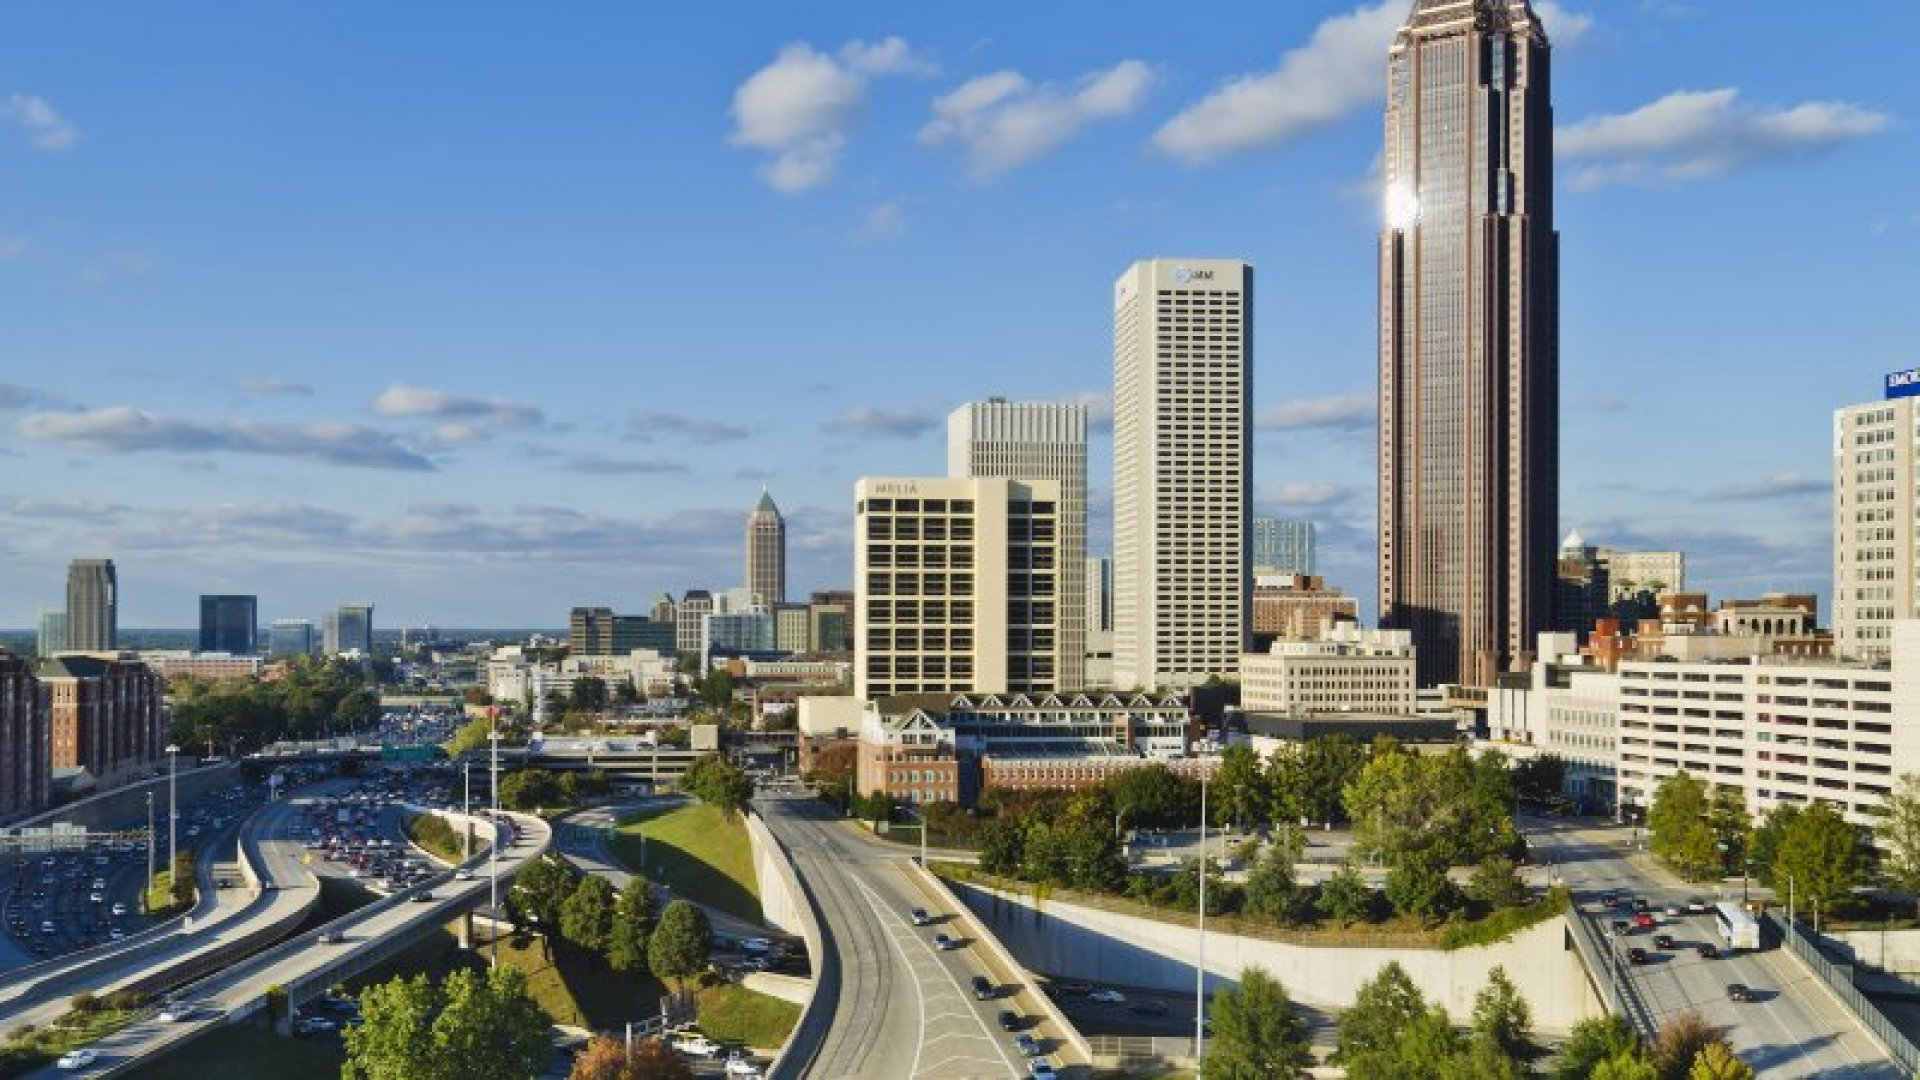 All Eyes on Atlanta: Cooking Up Big Sales in This Southern City Center